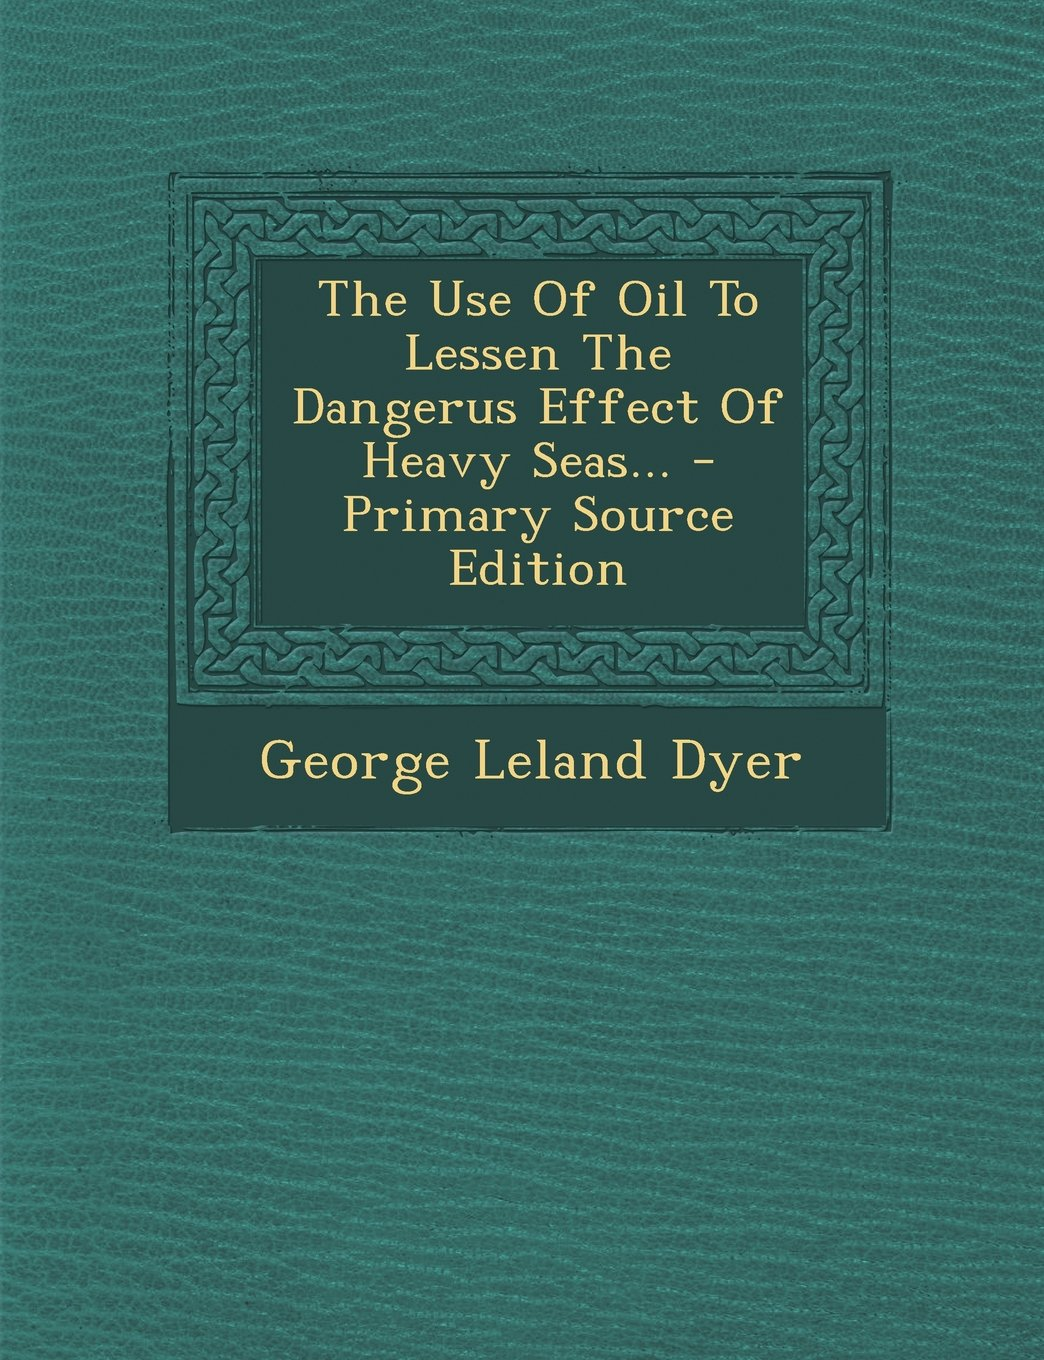 Download The Use Of Oil To Lessen The Dangerus Effect Of Heavy Seas... pdf